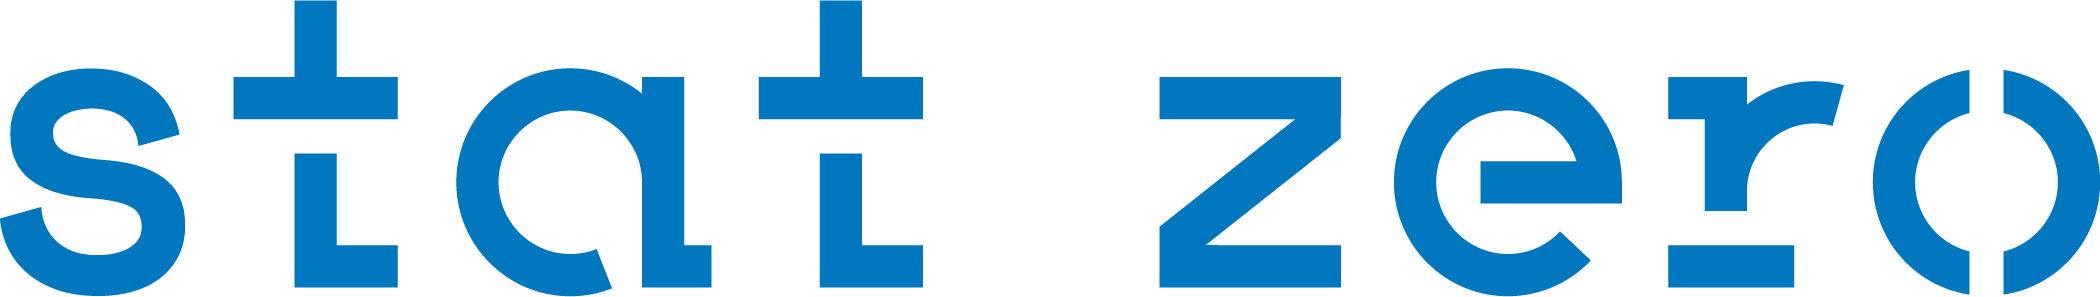 statzero-primary_logo-blue.jpg